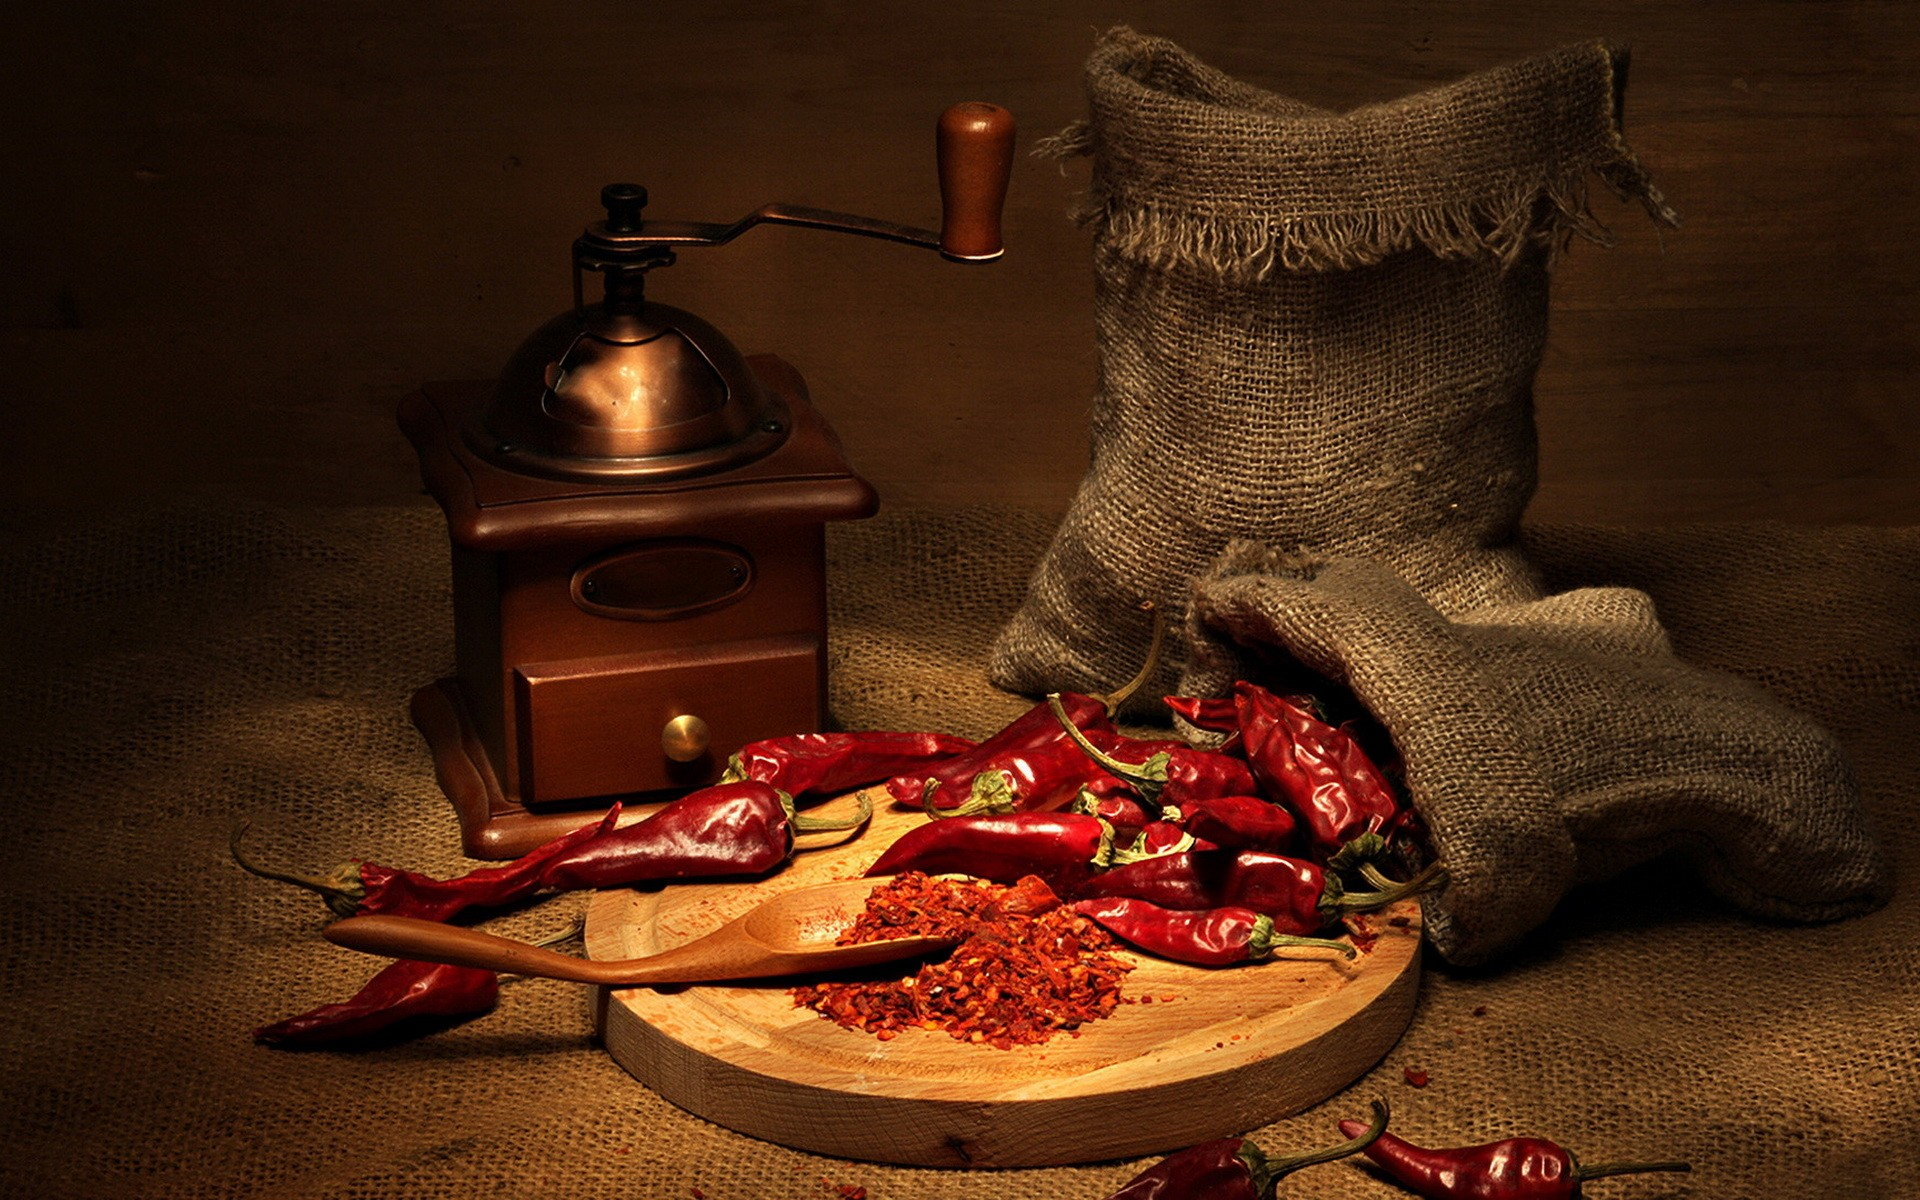 Free Best Chili Images, Josephina Winsett